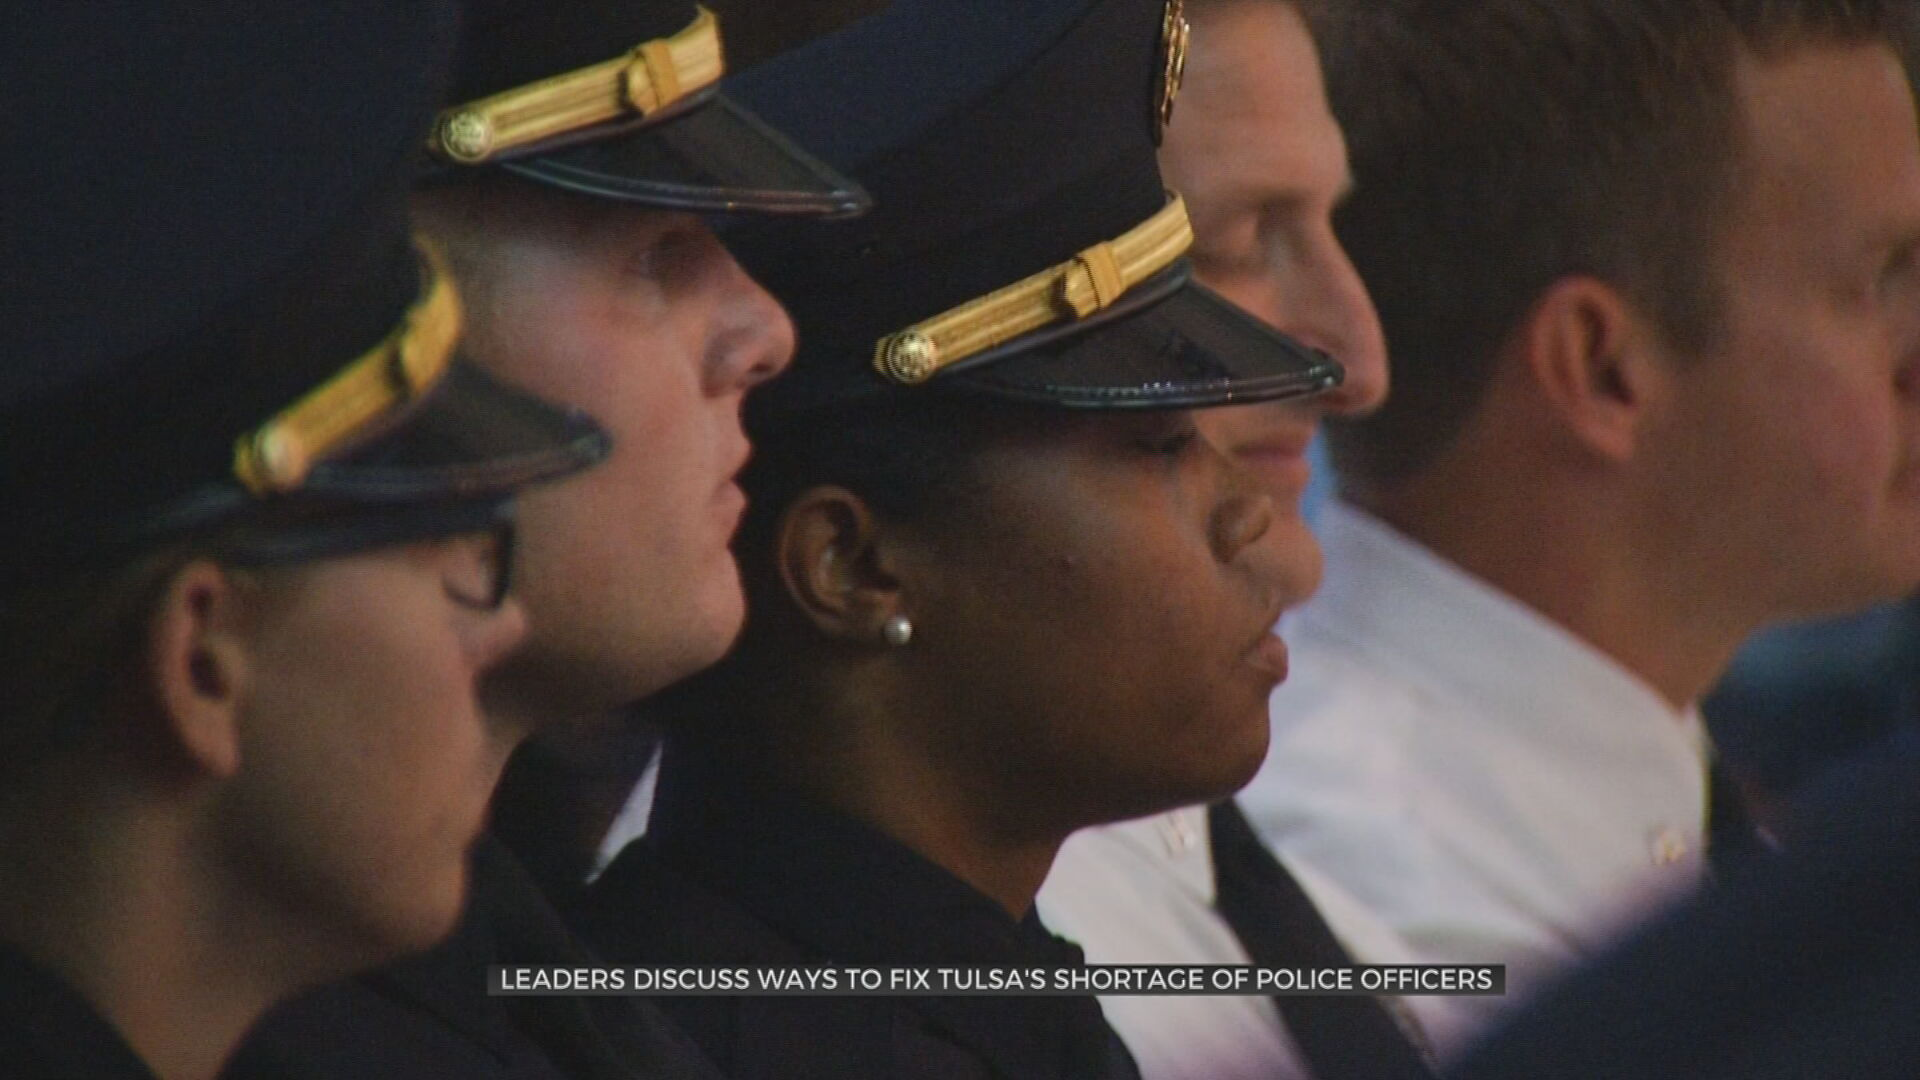 City Leaders Work To Fix Tulsa's Shortage Of Police Officers